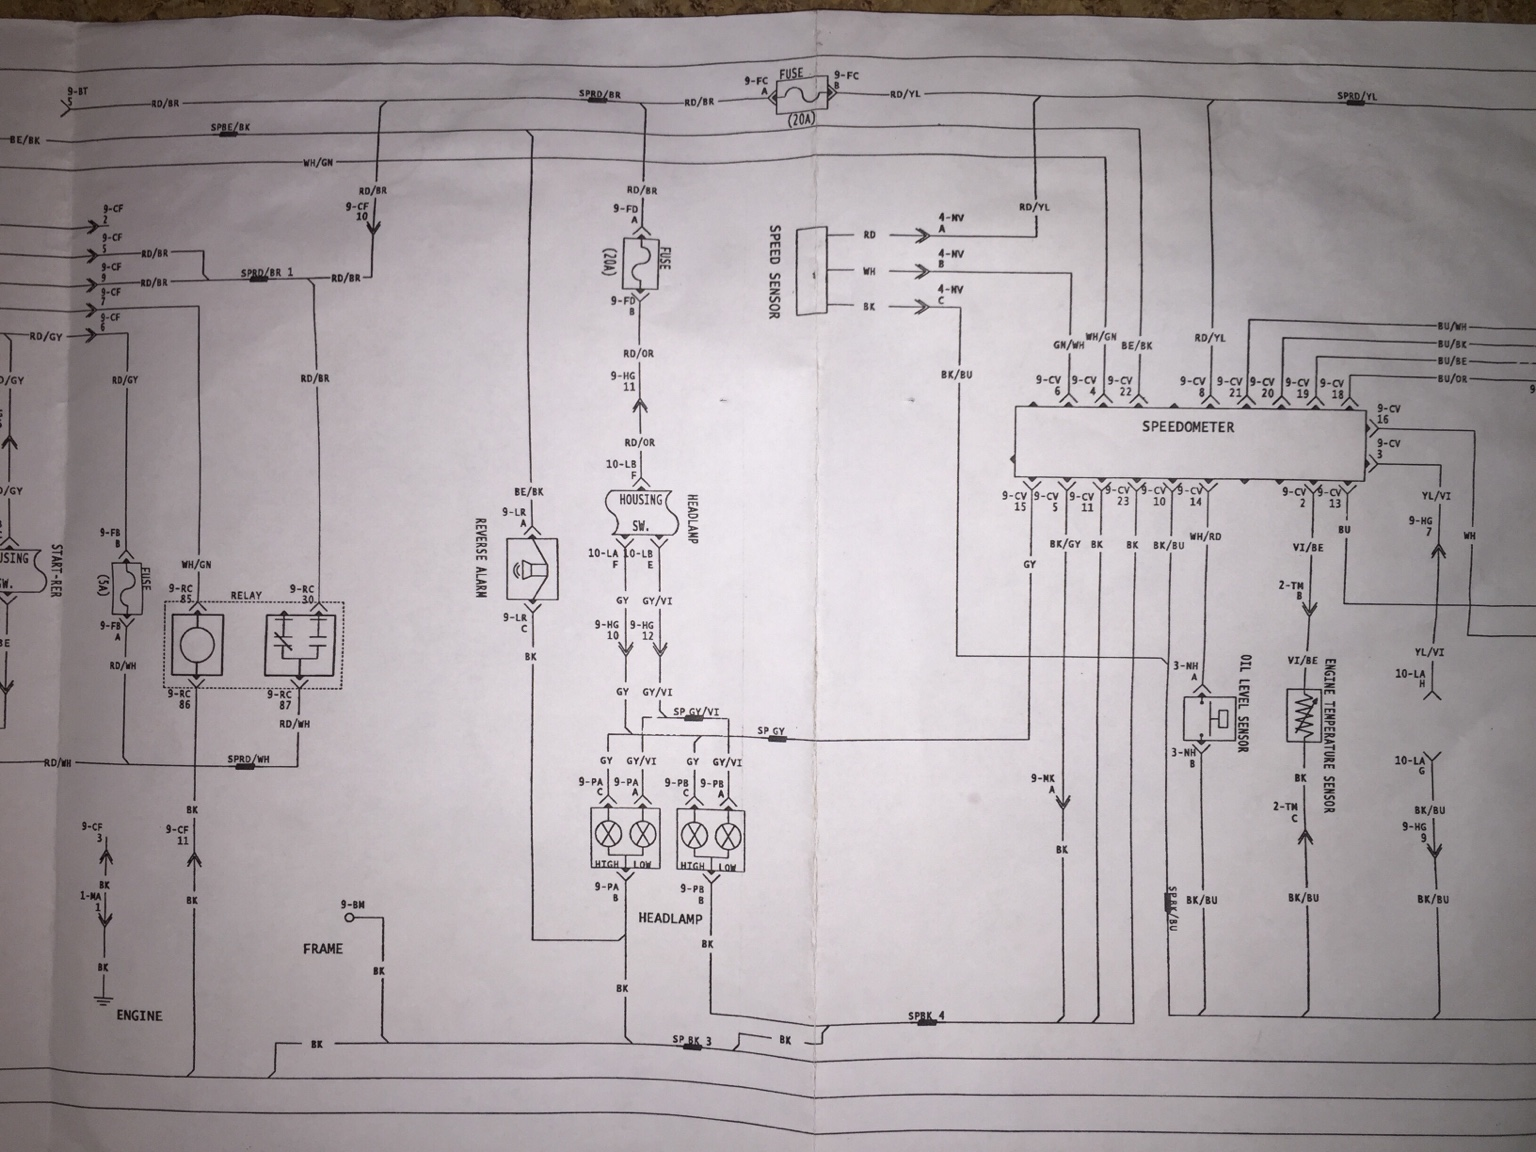 2004 Rev Wiring Diagram 800ho Needed Hcs Snowmobile Forums 2014 Ski Doo Headlight Report This Image